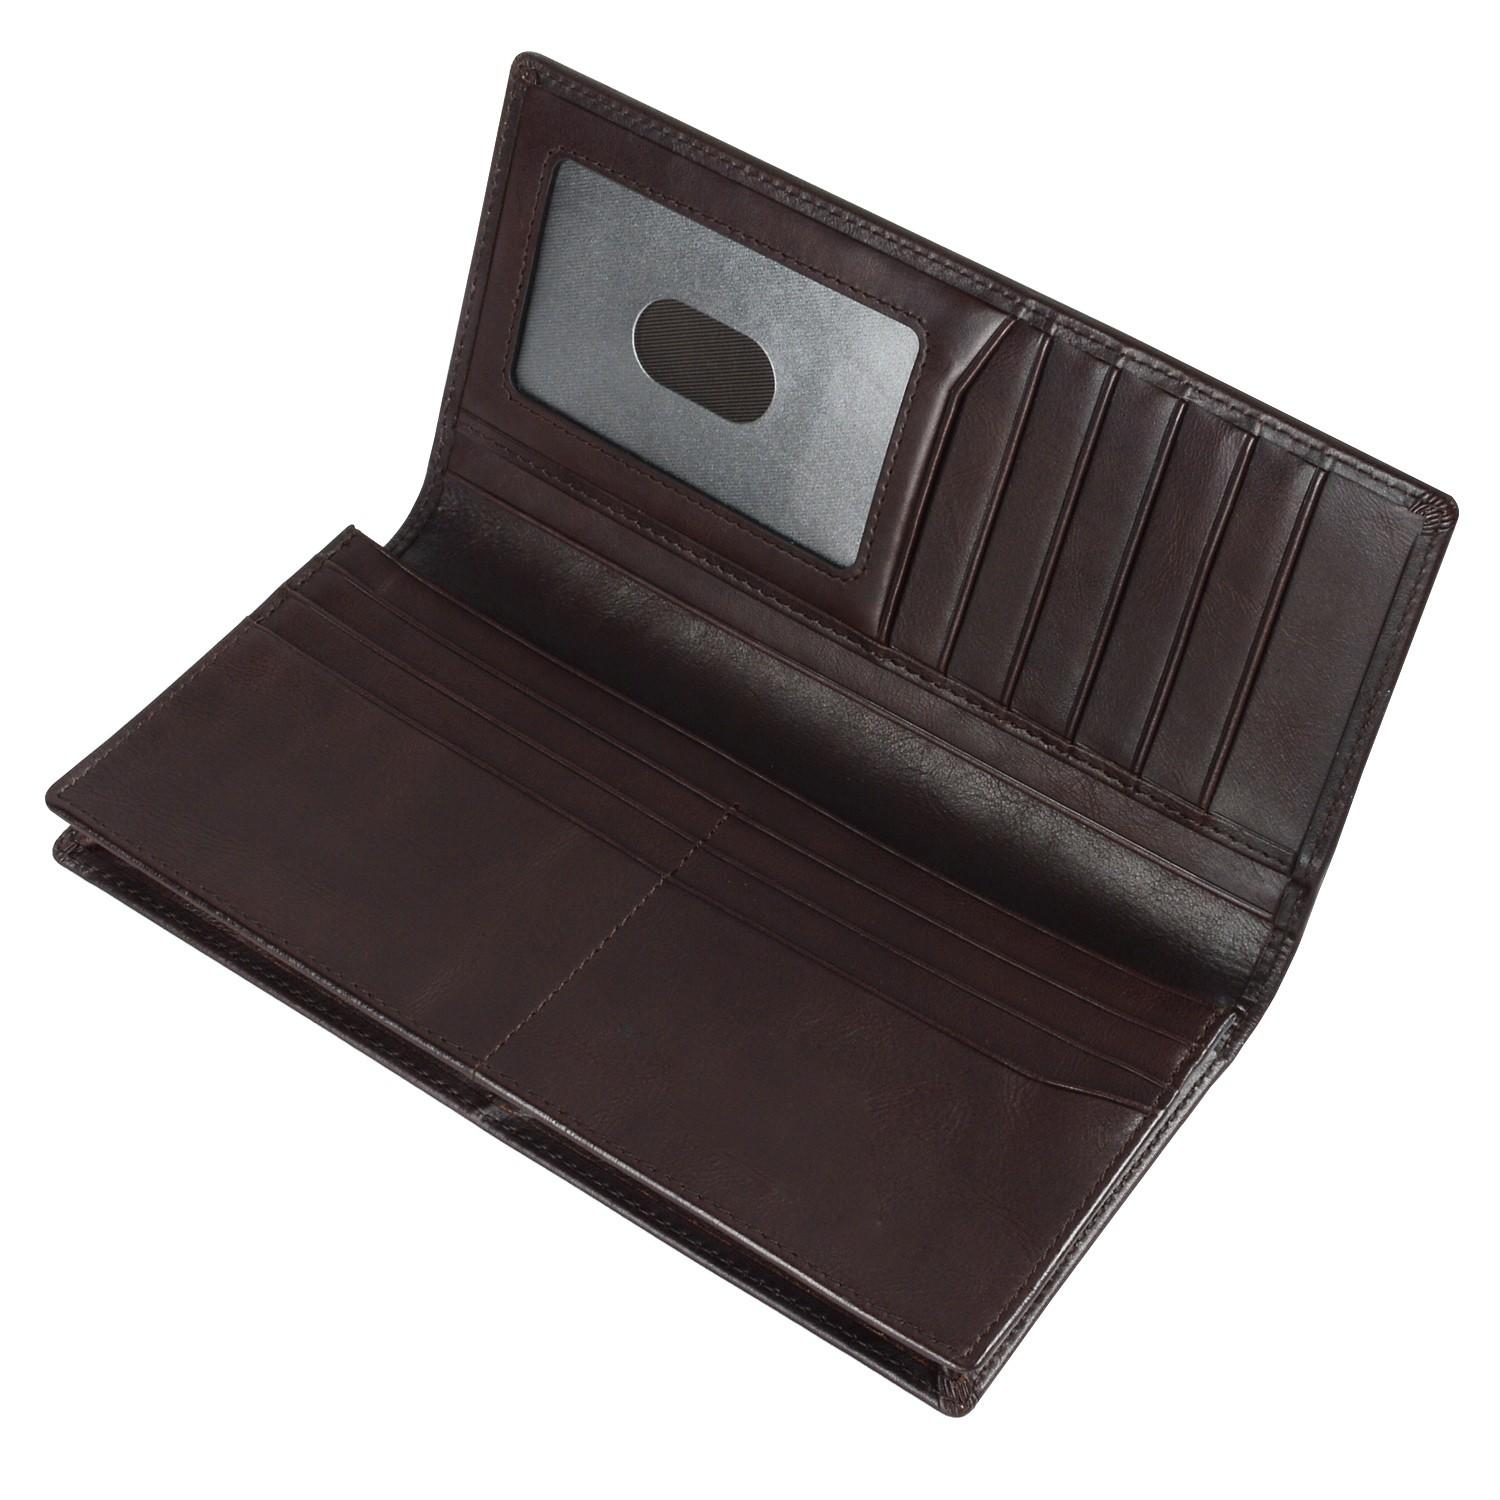 AIVI leather card wallet manufacturer for iphone X-3